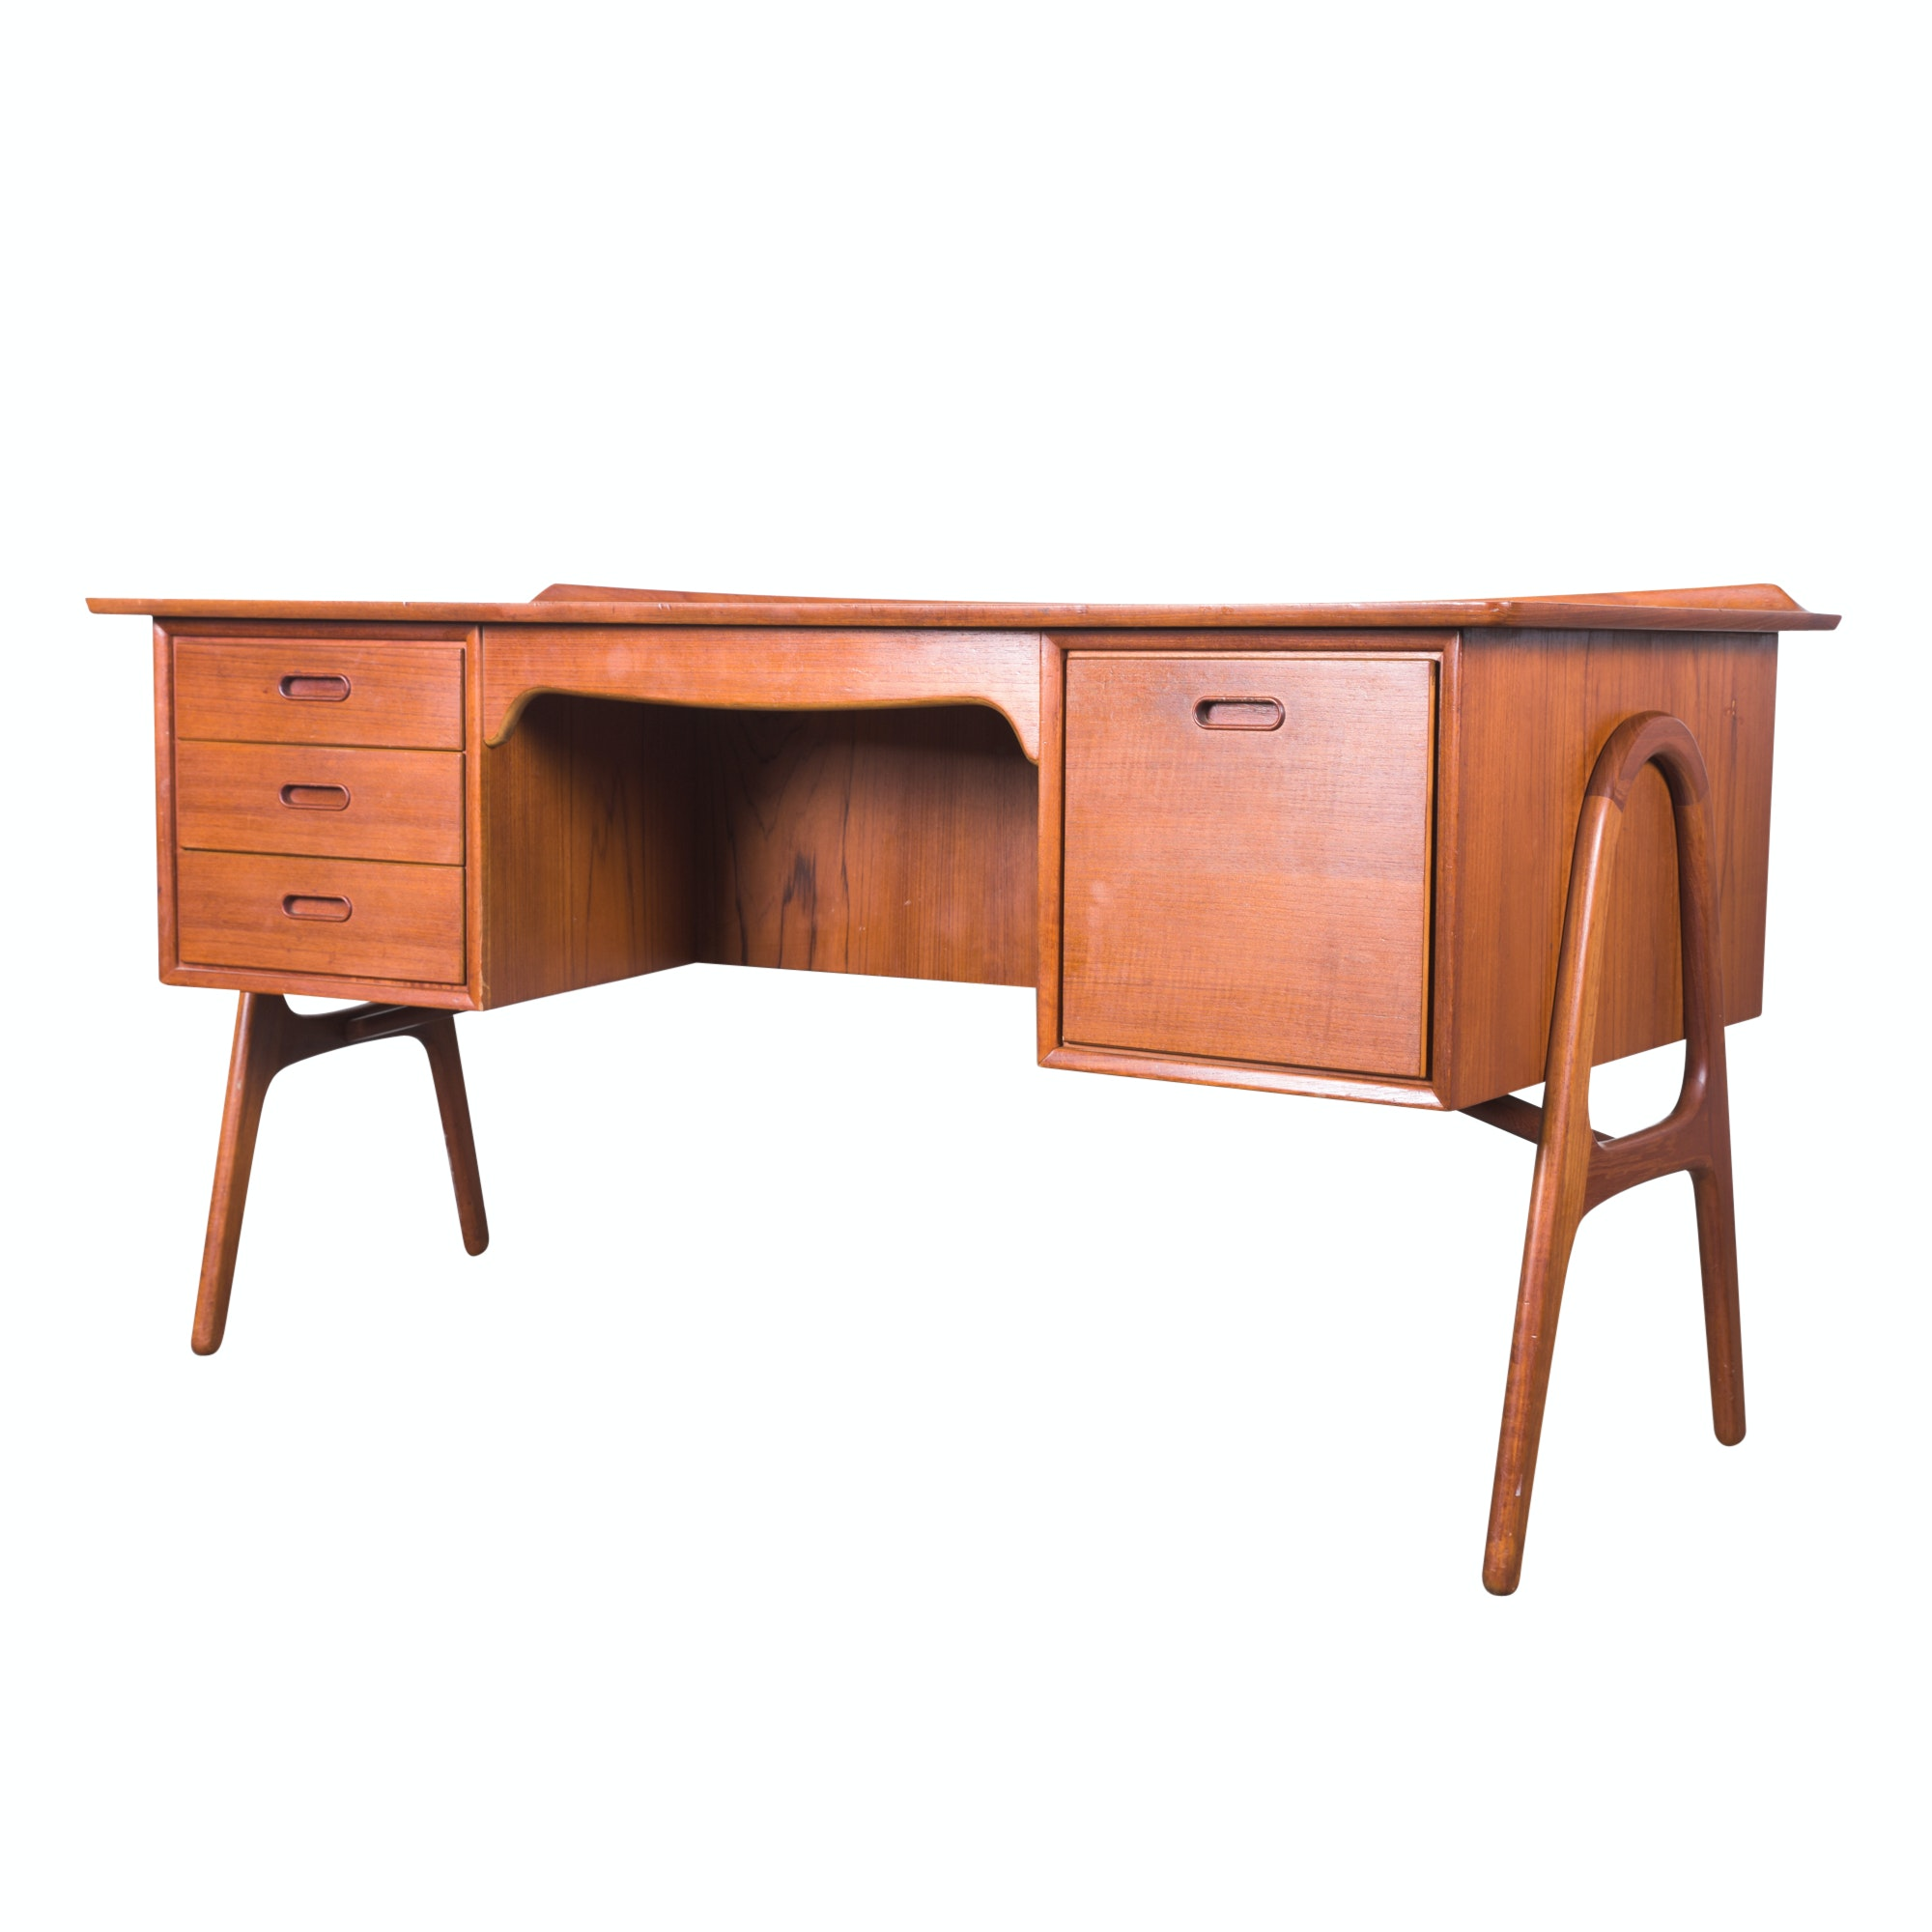 Danish Modern Teak Executive Desk by Sven Madsen for Sigurd Hansen, Mid-20th C